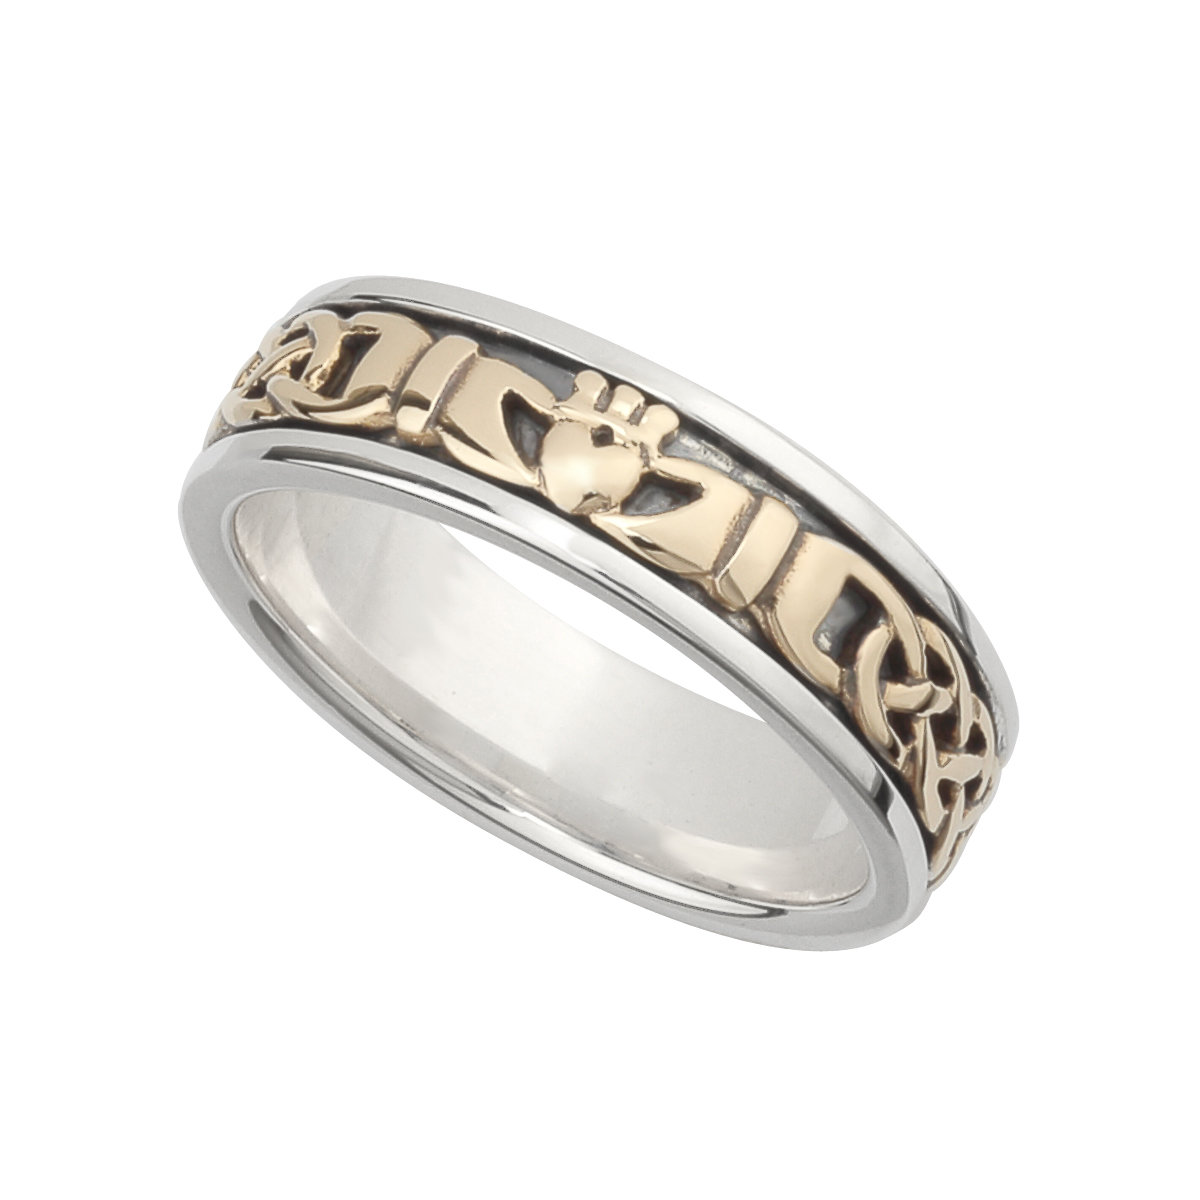 Ladies gold and silver claddagh band ring s21007 from Solvar